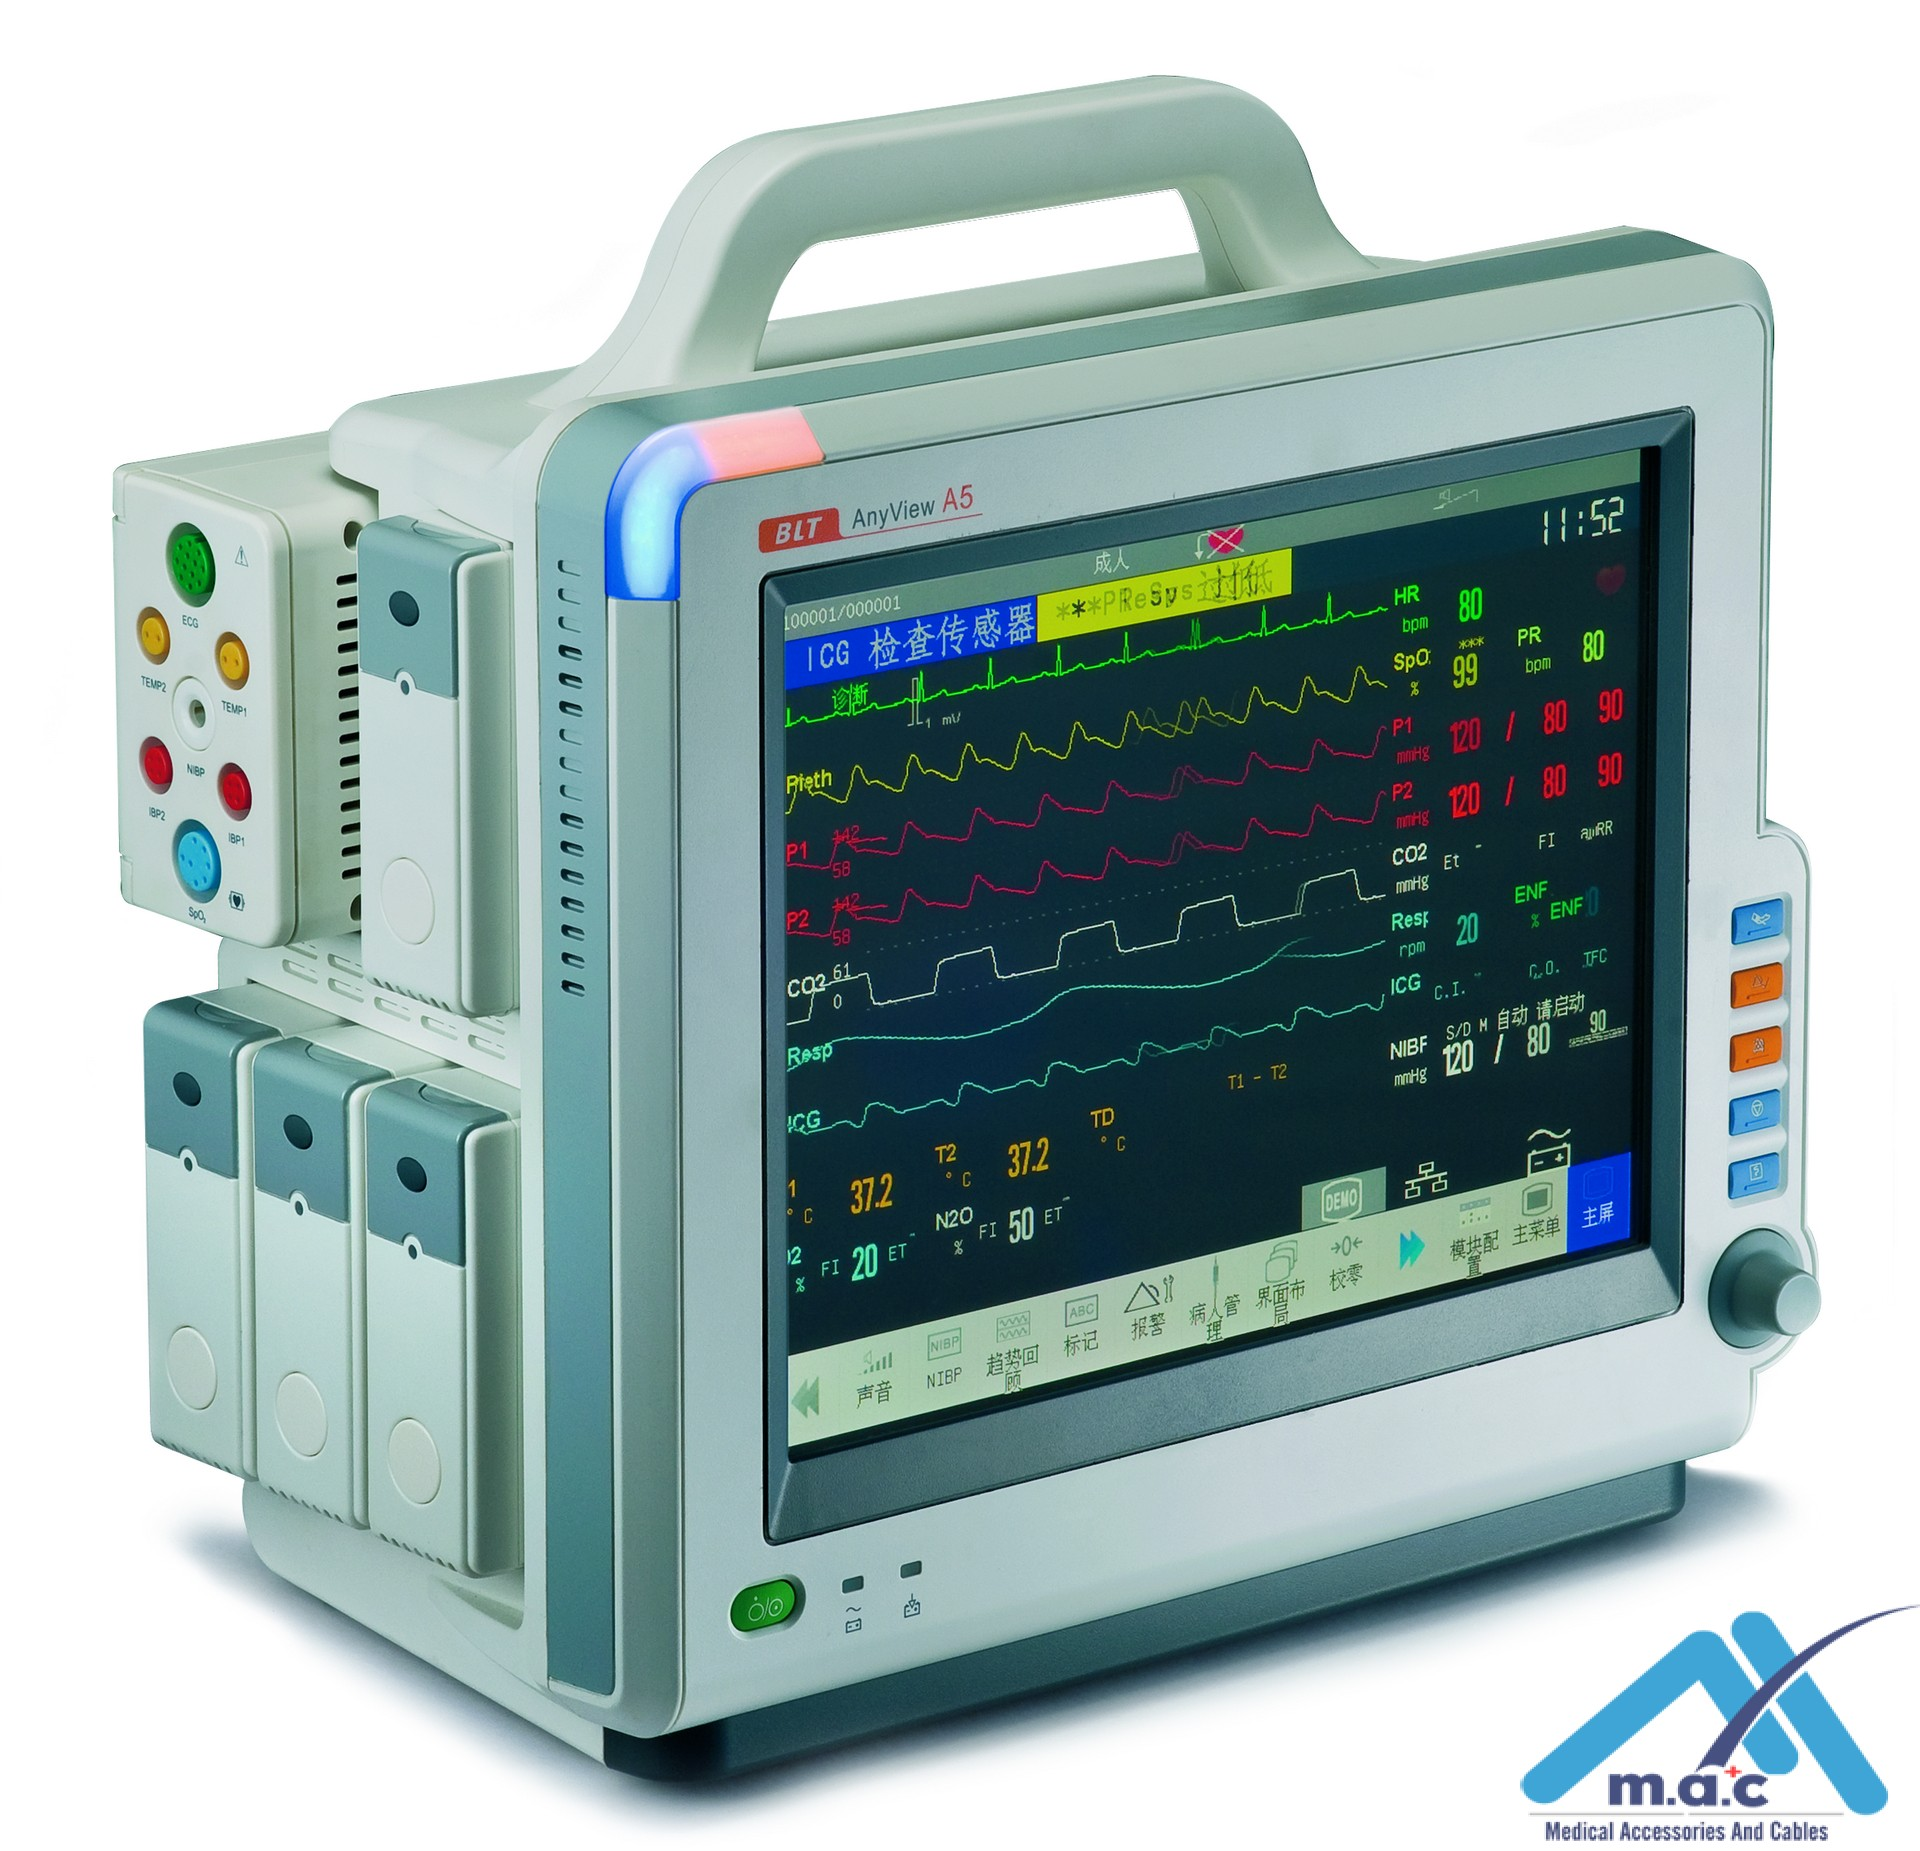 A5 modular patient monitor